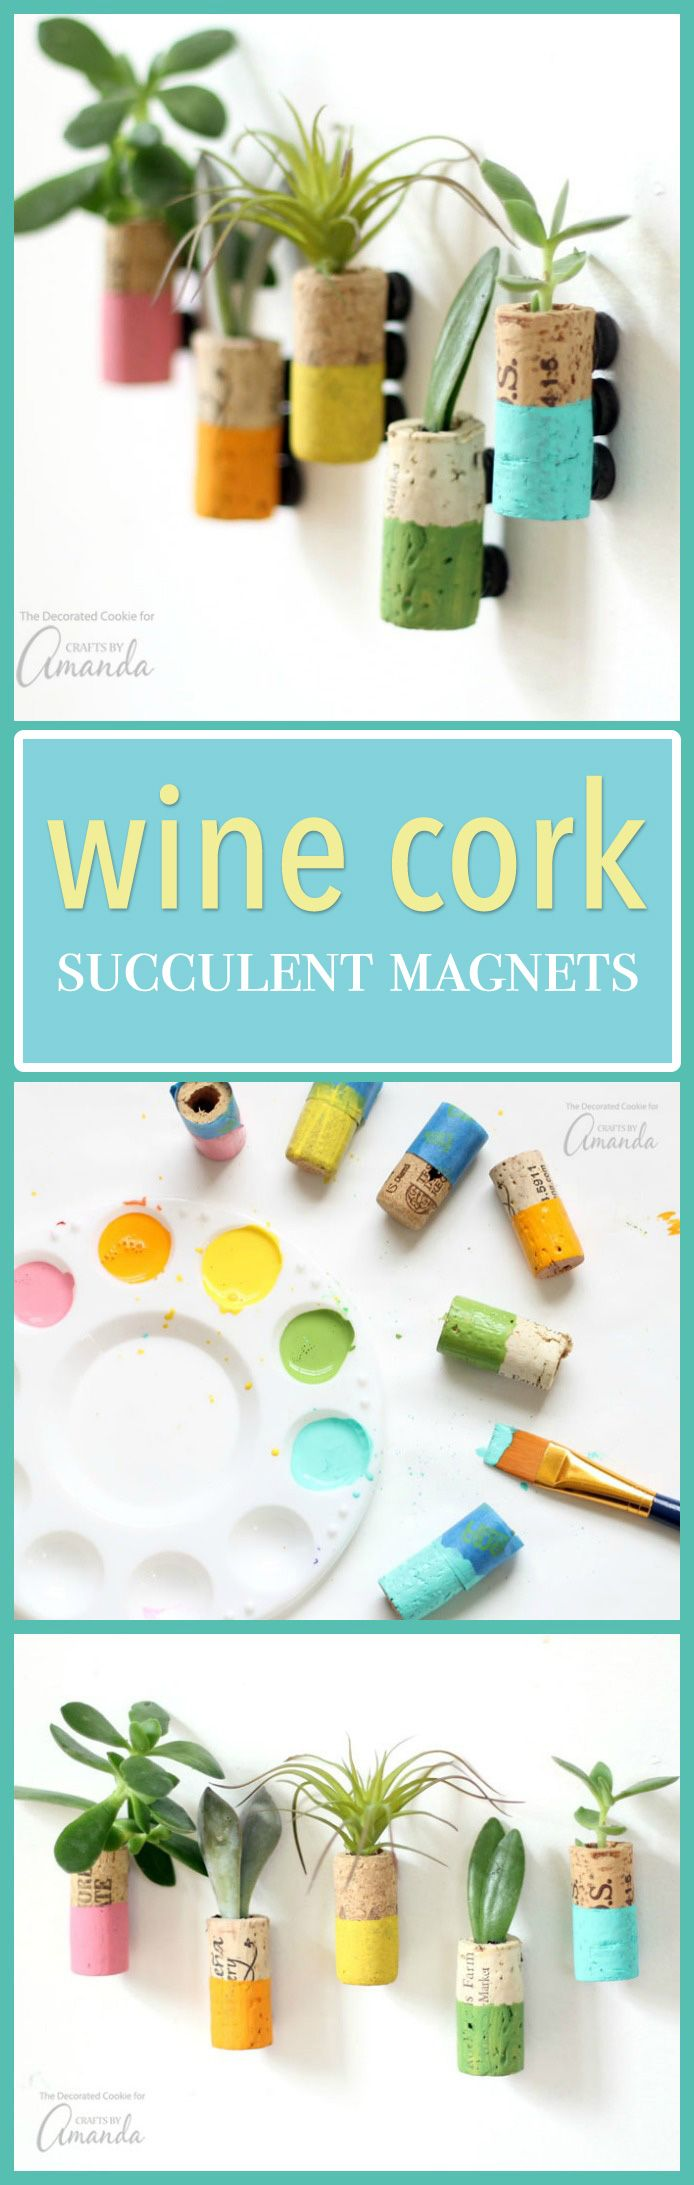 Used wine corks for crafts - These Wine Cork Succulent Magnets Are Colorful Magnets Made From Recycled Wine Corks These Pretty